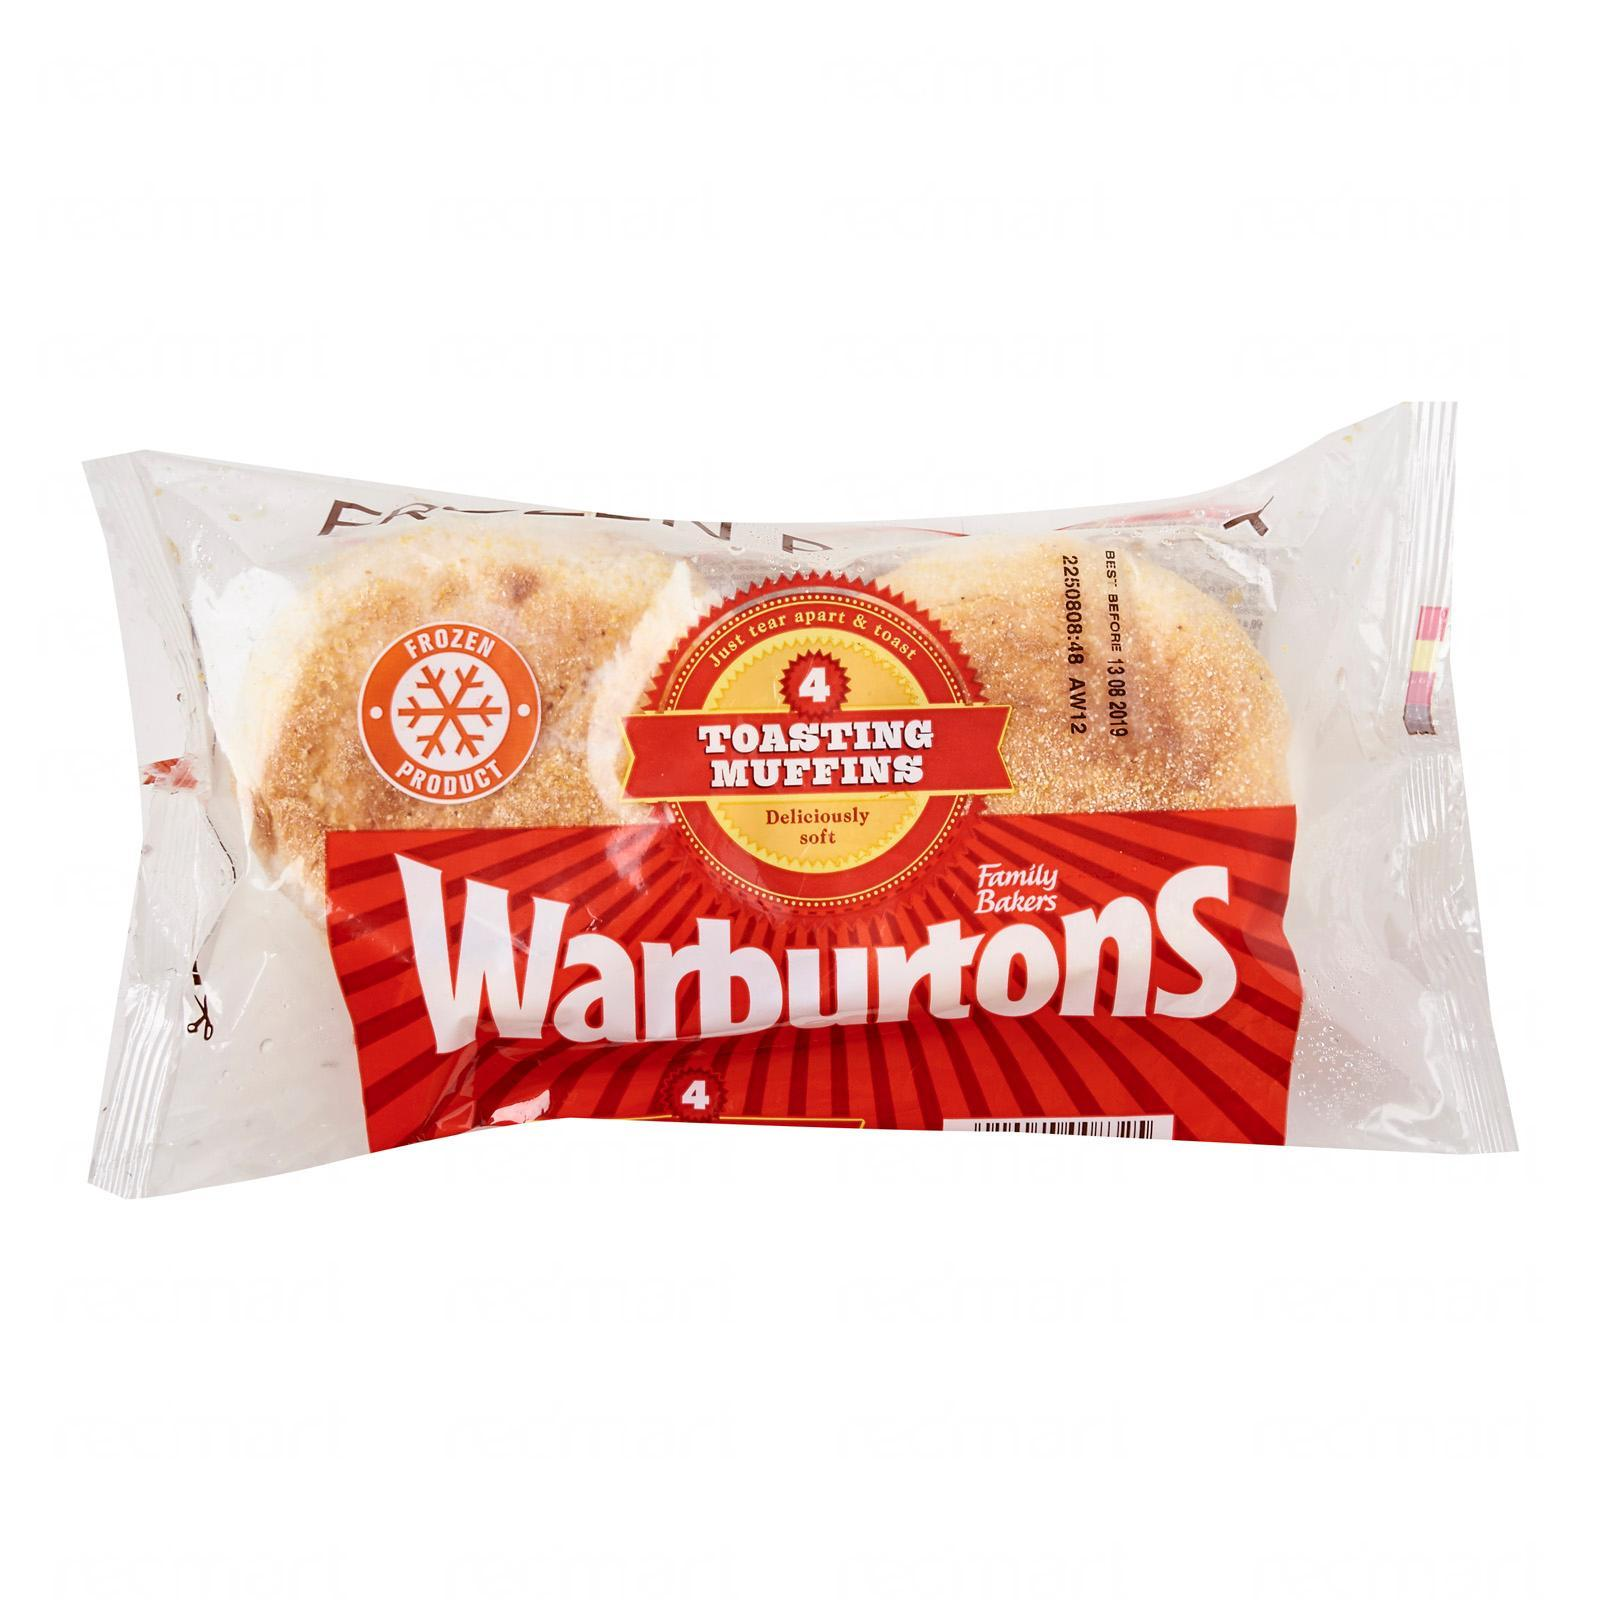 Warburtons 4 Tear And Toast Muffins - Frozen By Redmart.